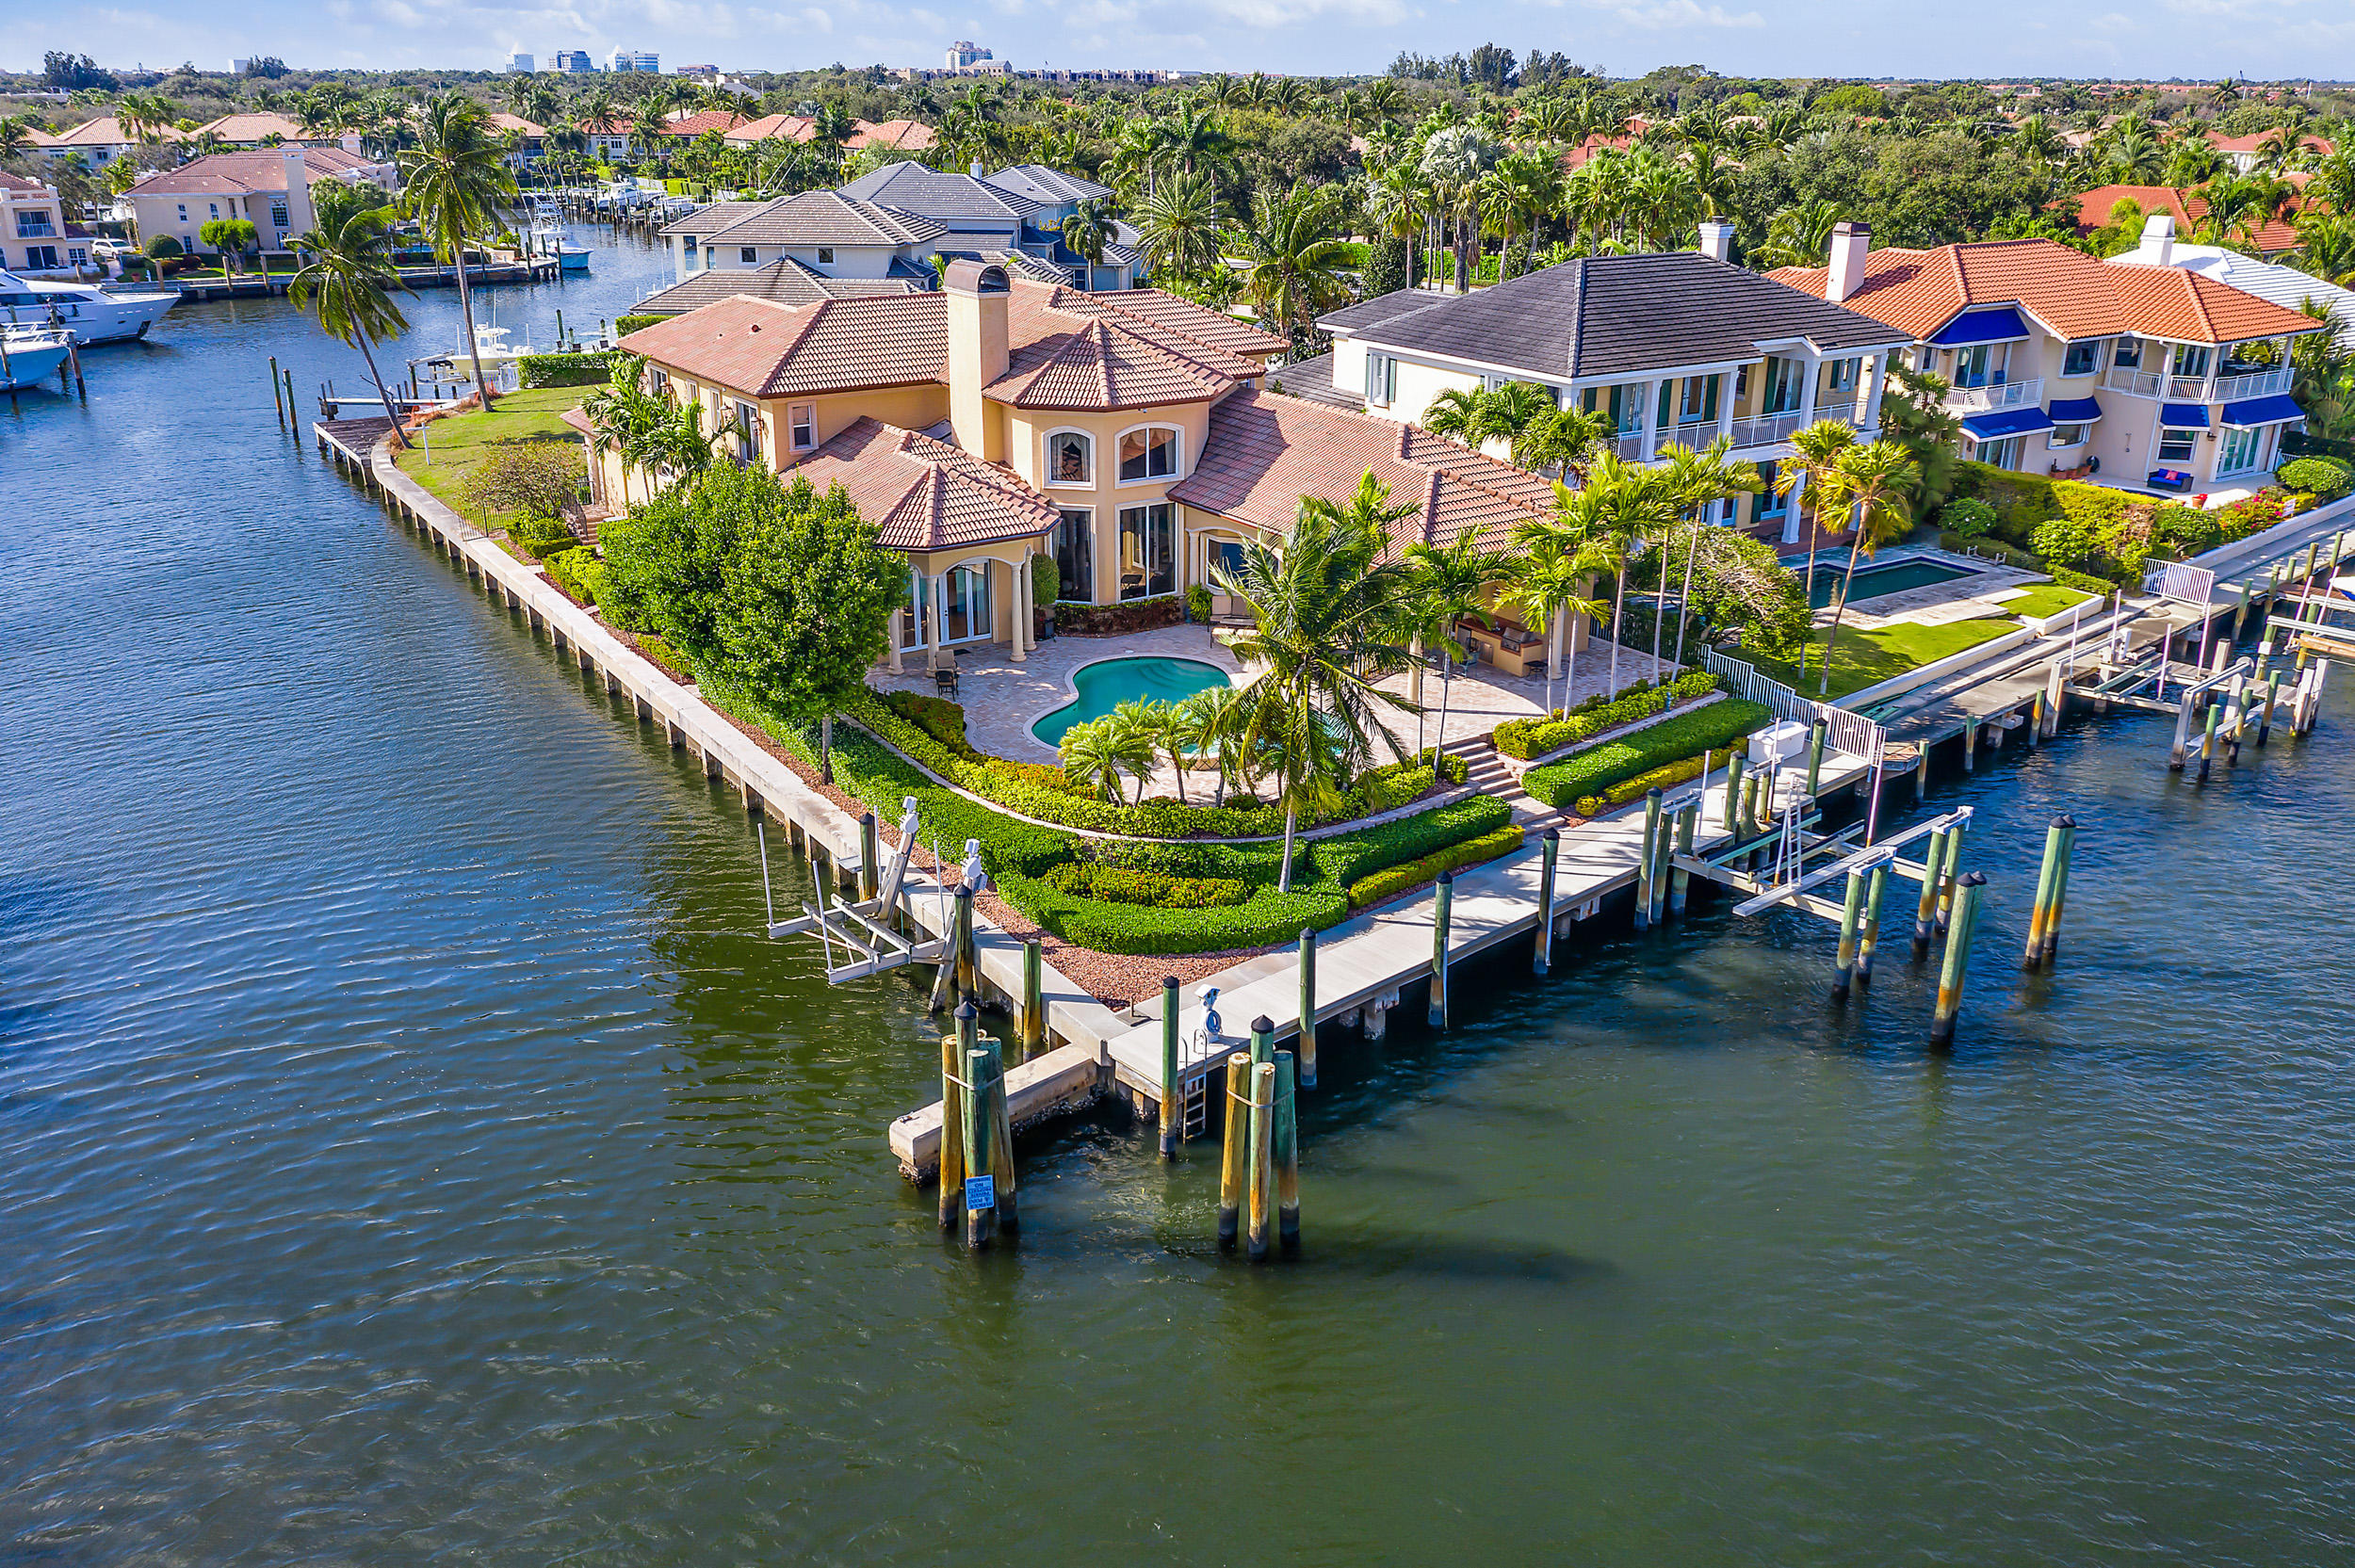 713 Harbour Point Drive, North Palm Beach, Florida 33410, 4 Bedrooms Bedrooms, ,4.1 BathroomsBathrooms,A,Single family,Harbour Point,RX-10599799